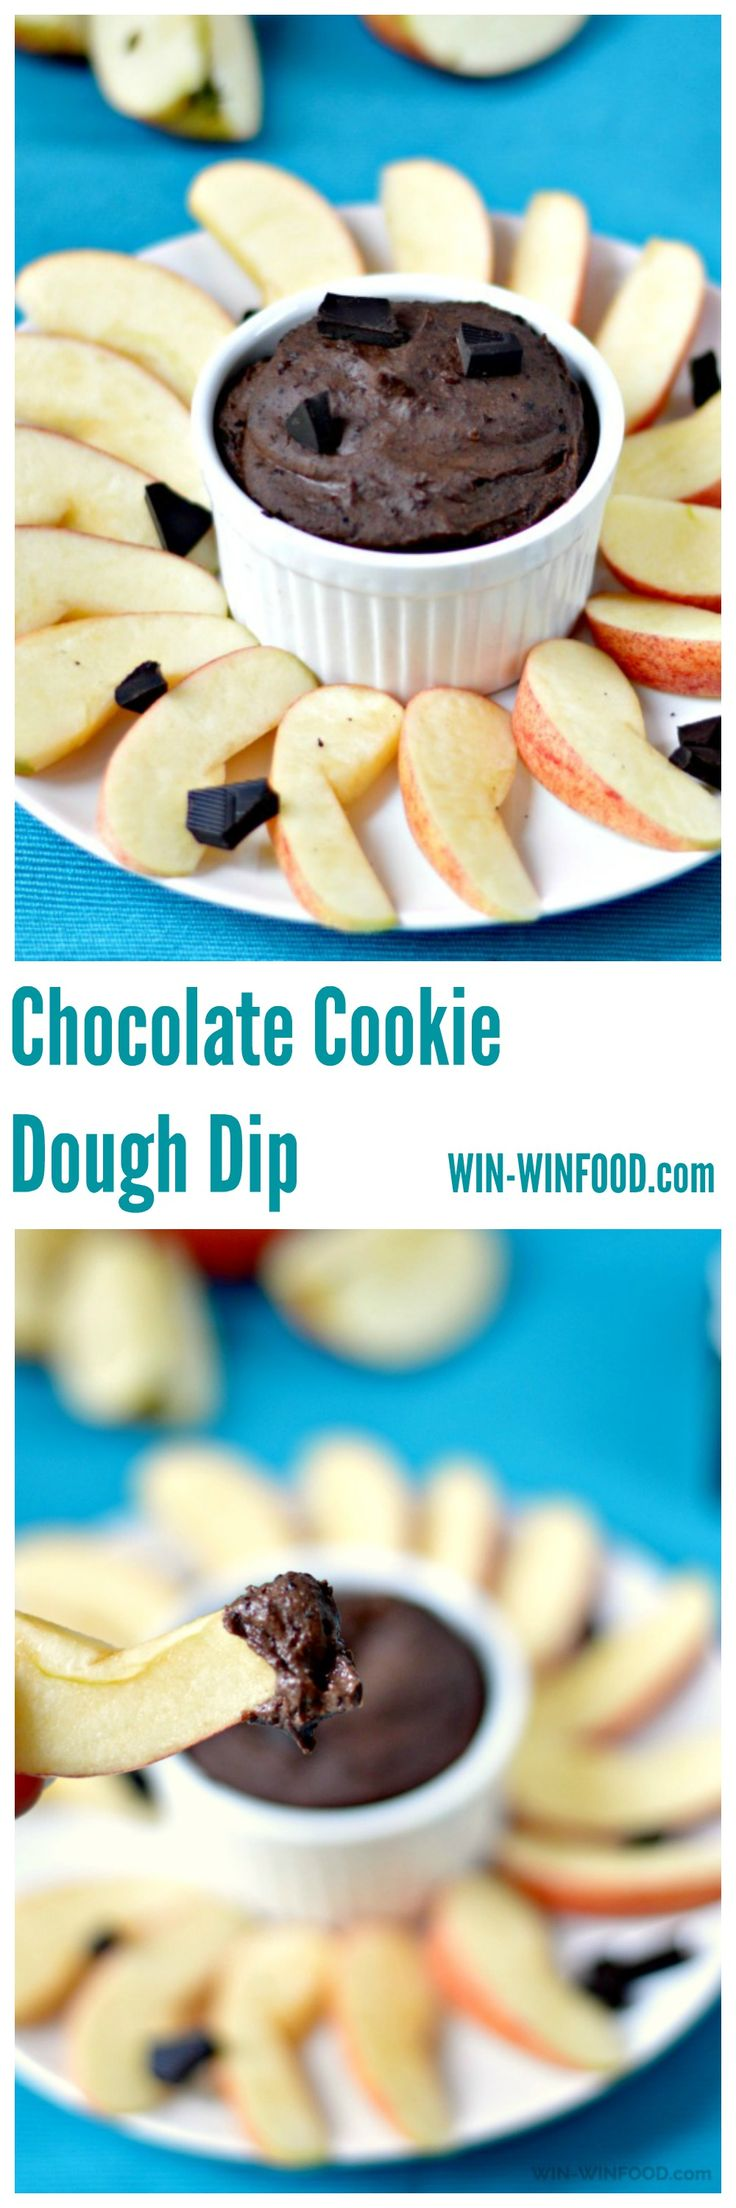 Chocolate Cookie Dough Dip | WIN-WINFOOD.com  No one will believe this chocolate cookie dough dip is actually healthy and the secret ingredient will knock everyone's socks off. #healthy #glutenfree #vegan #oilfree #sugarfree #protein